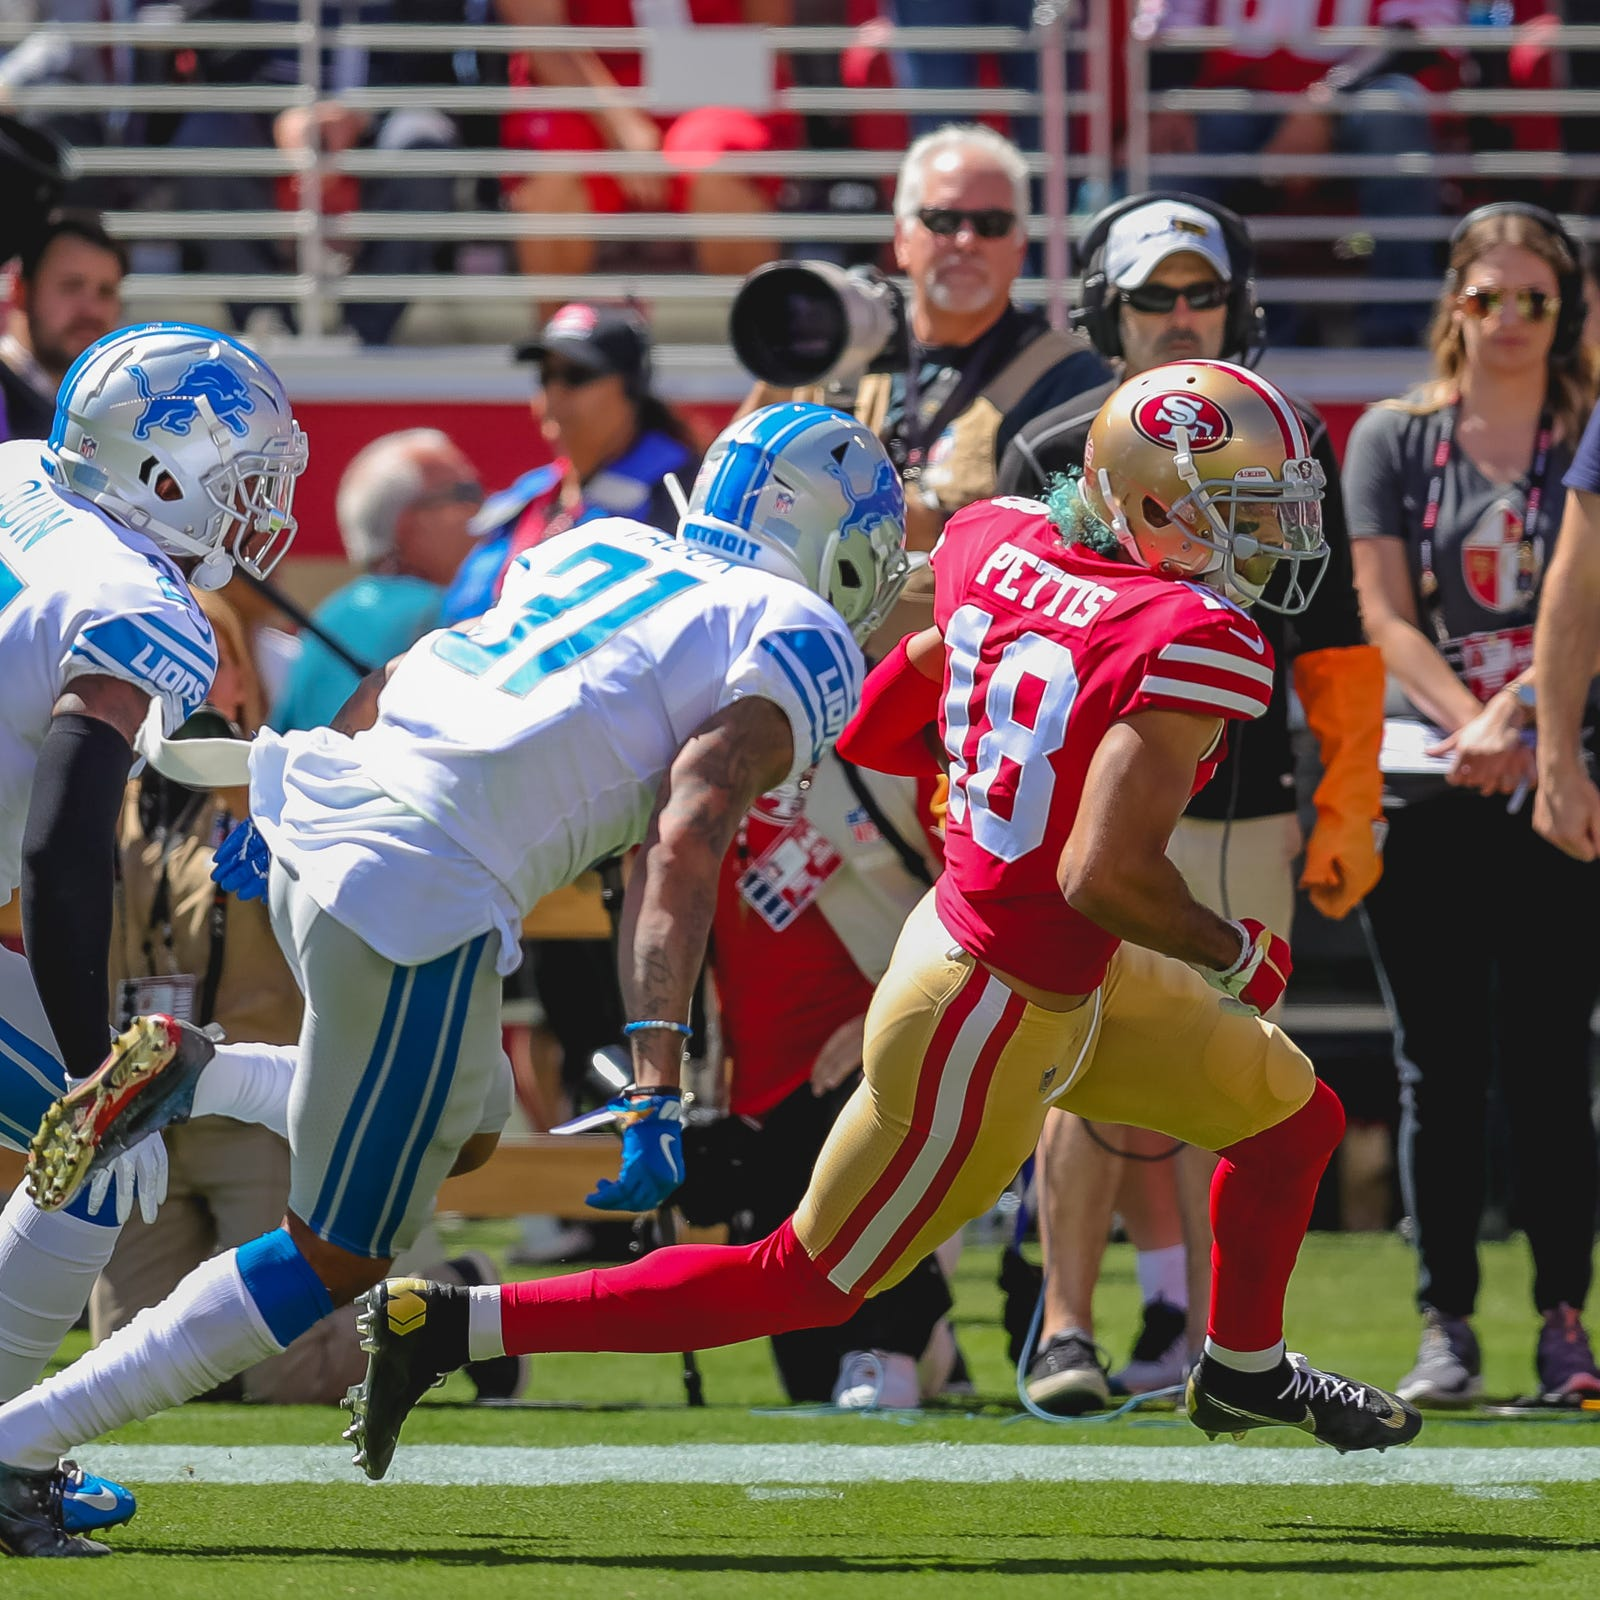 Detroit Lions observations vs. 49ers: CB Teez Tabor benched